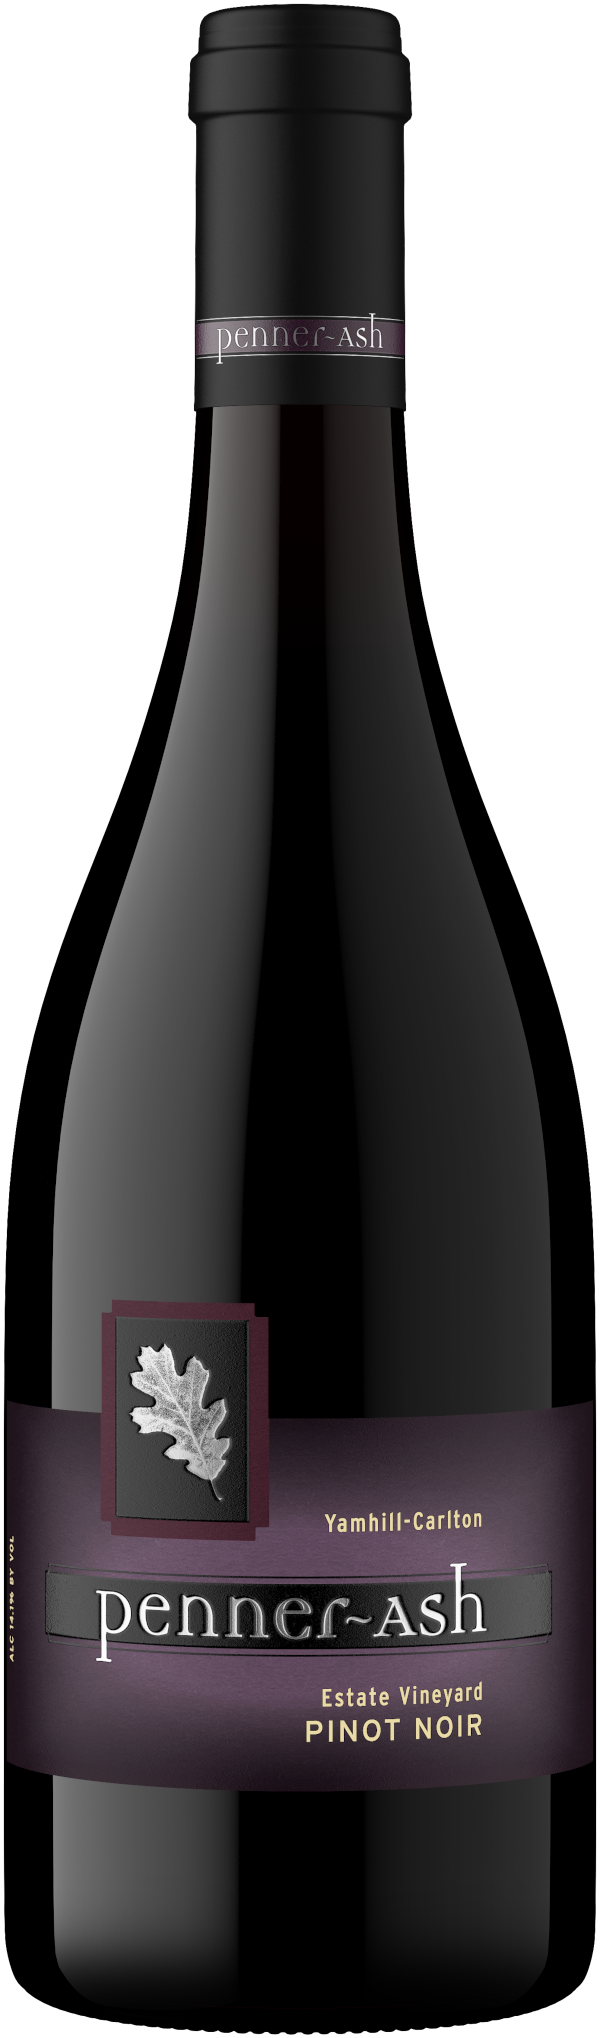 PennerAsh-PinotNoir-Estate-YamhillCarlton-NV